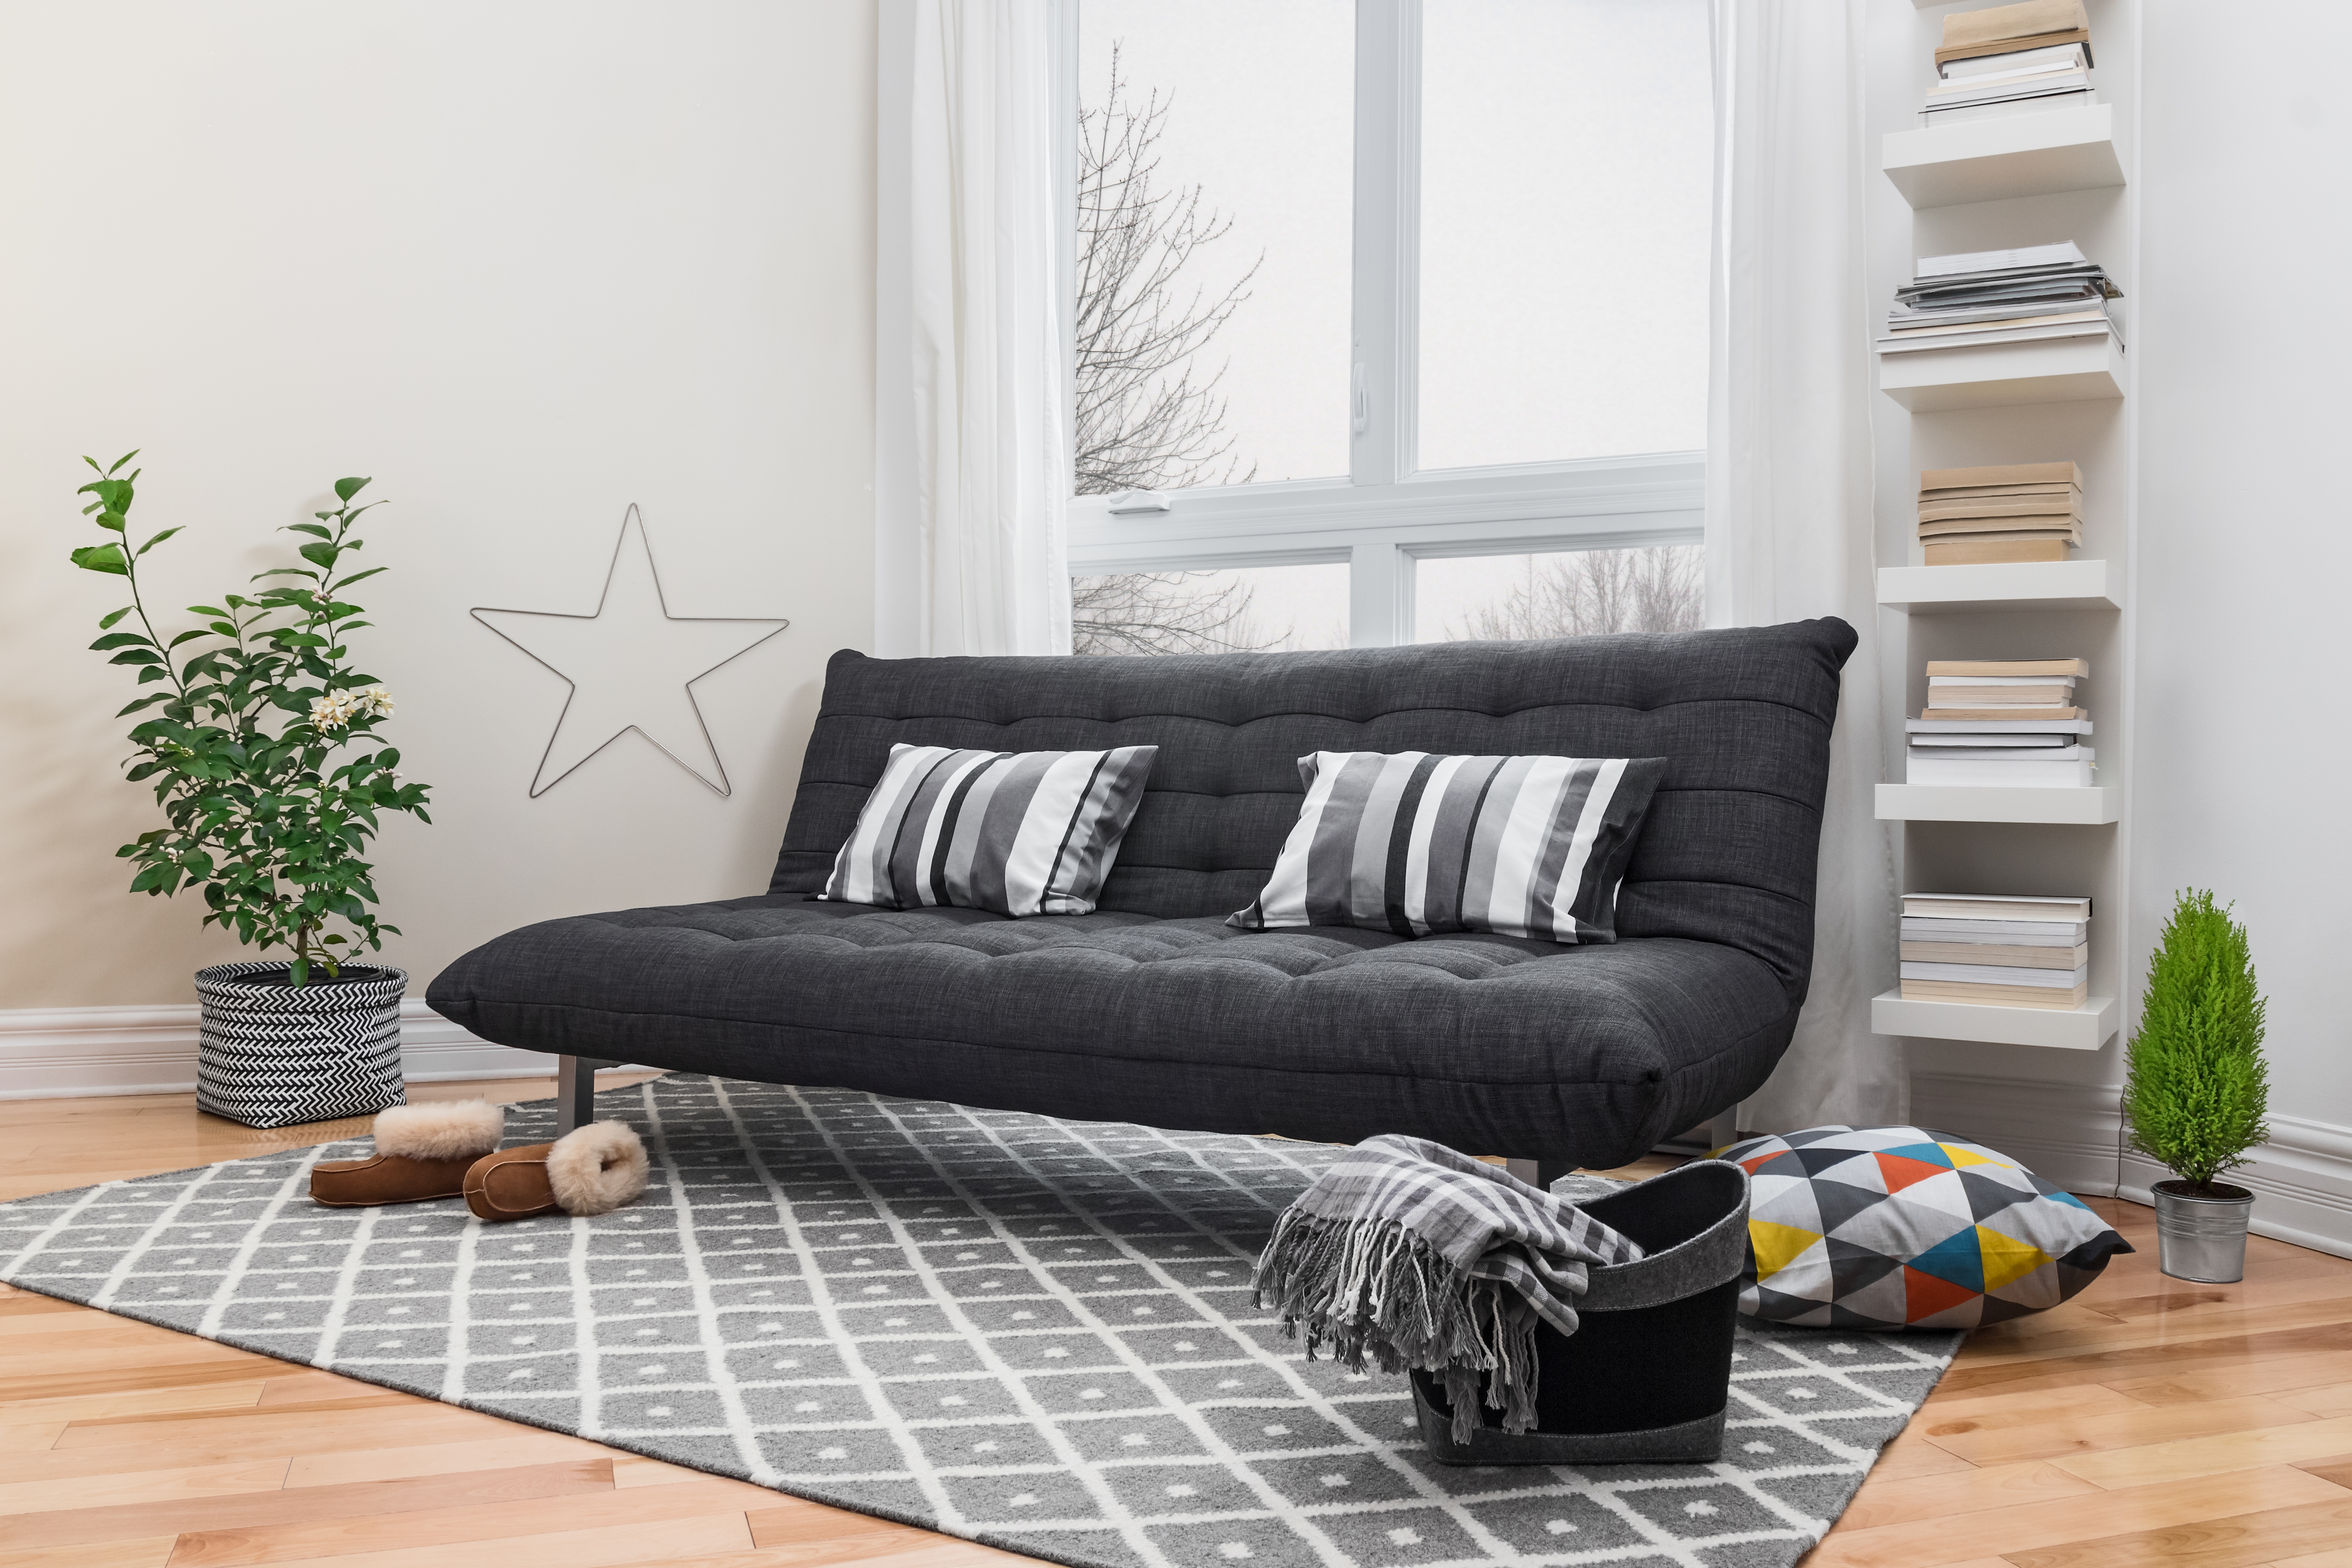 How To Stop A Futon Mattress From Sliding Hunker